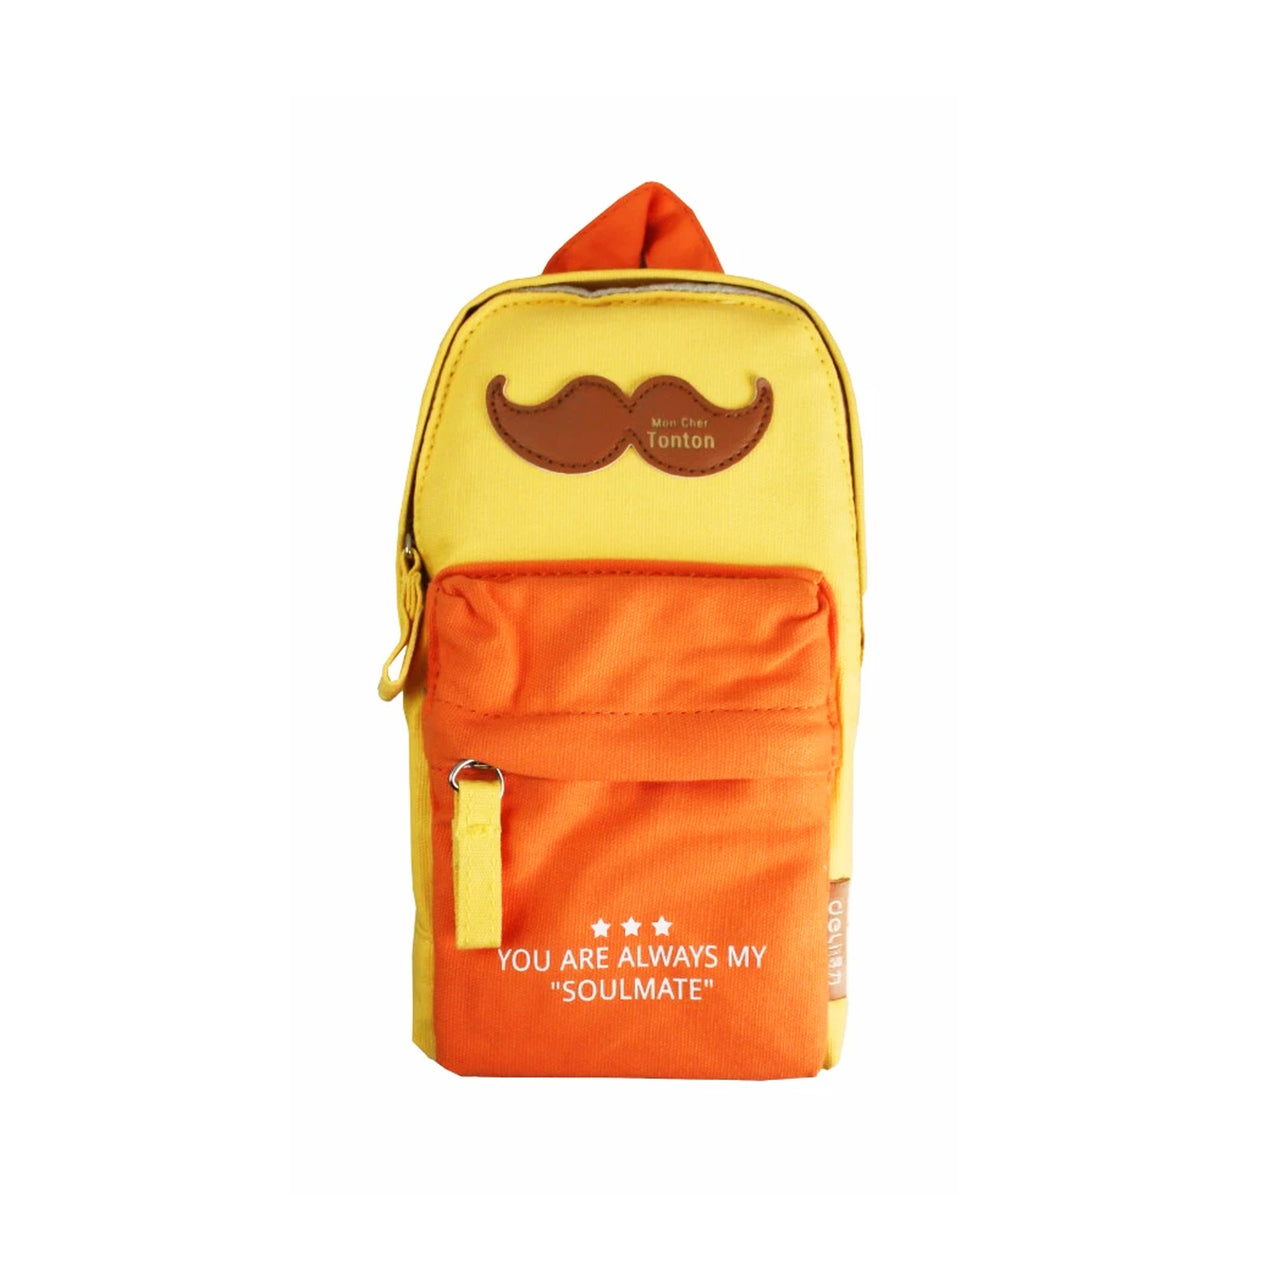 Backpack Pencil Case - Yellow Orange - EMARTBUY